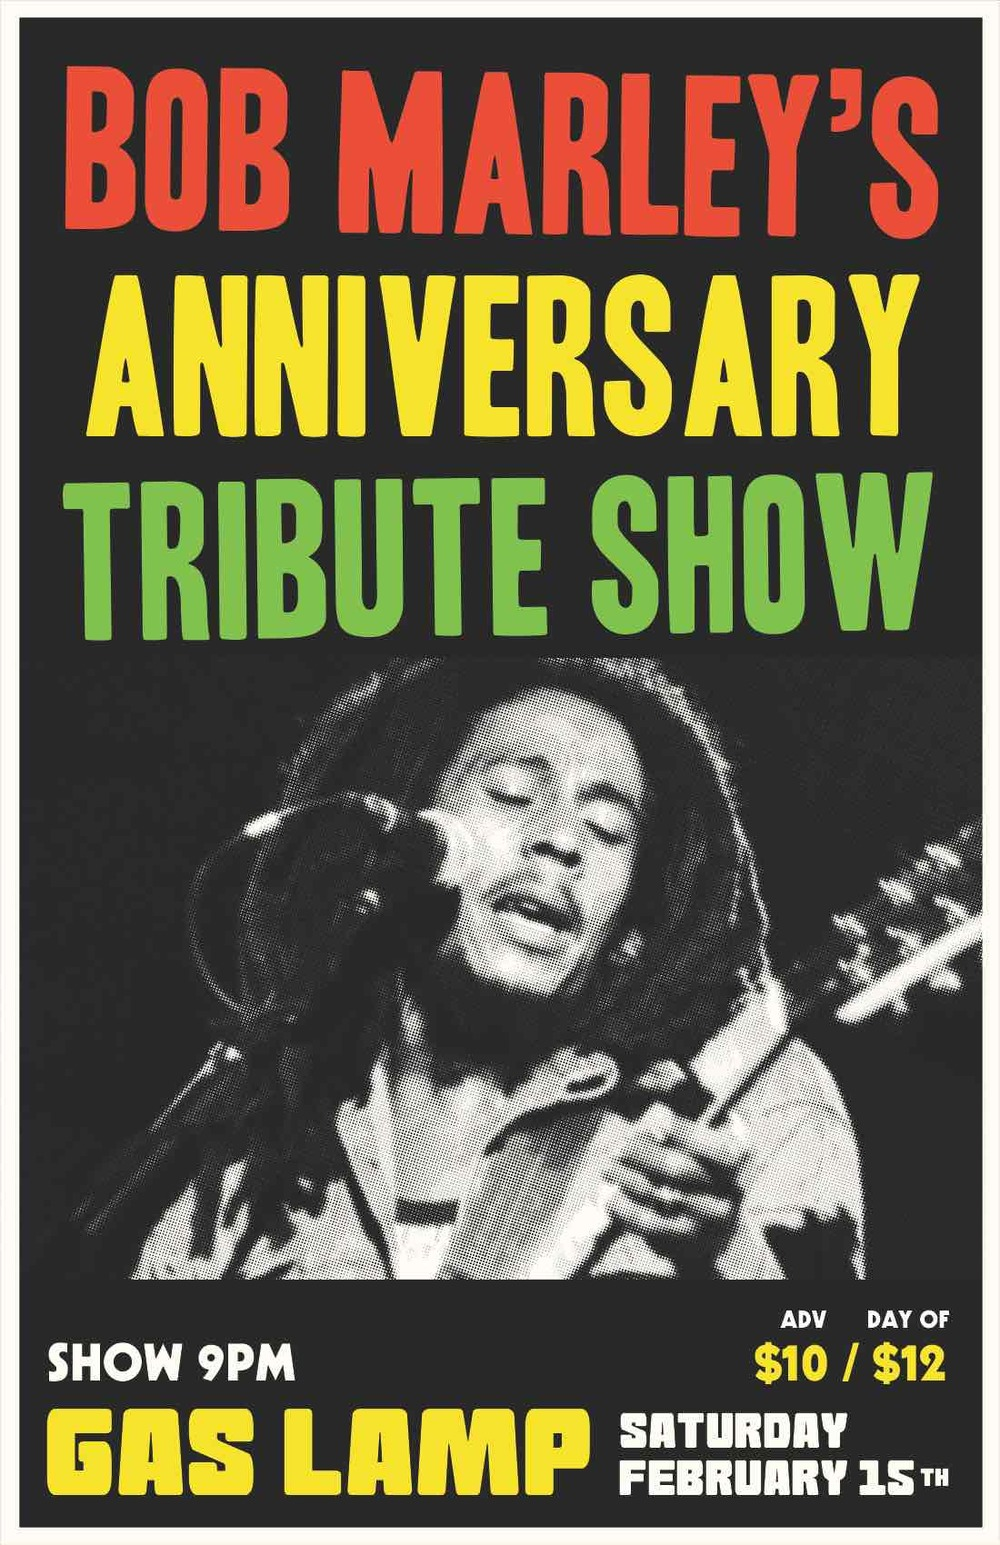 Bob_marley_tribute_show_feb_15_1